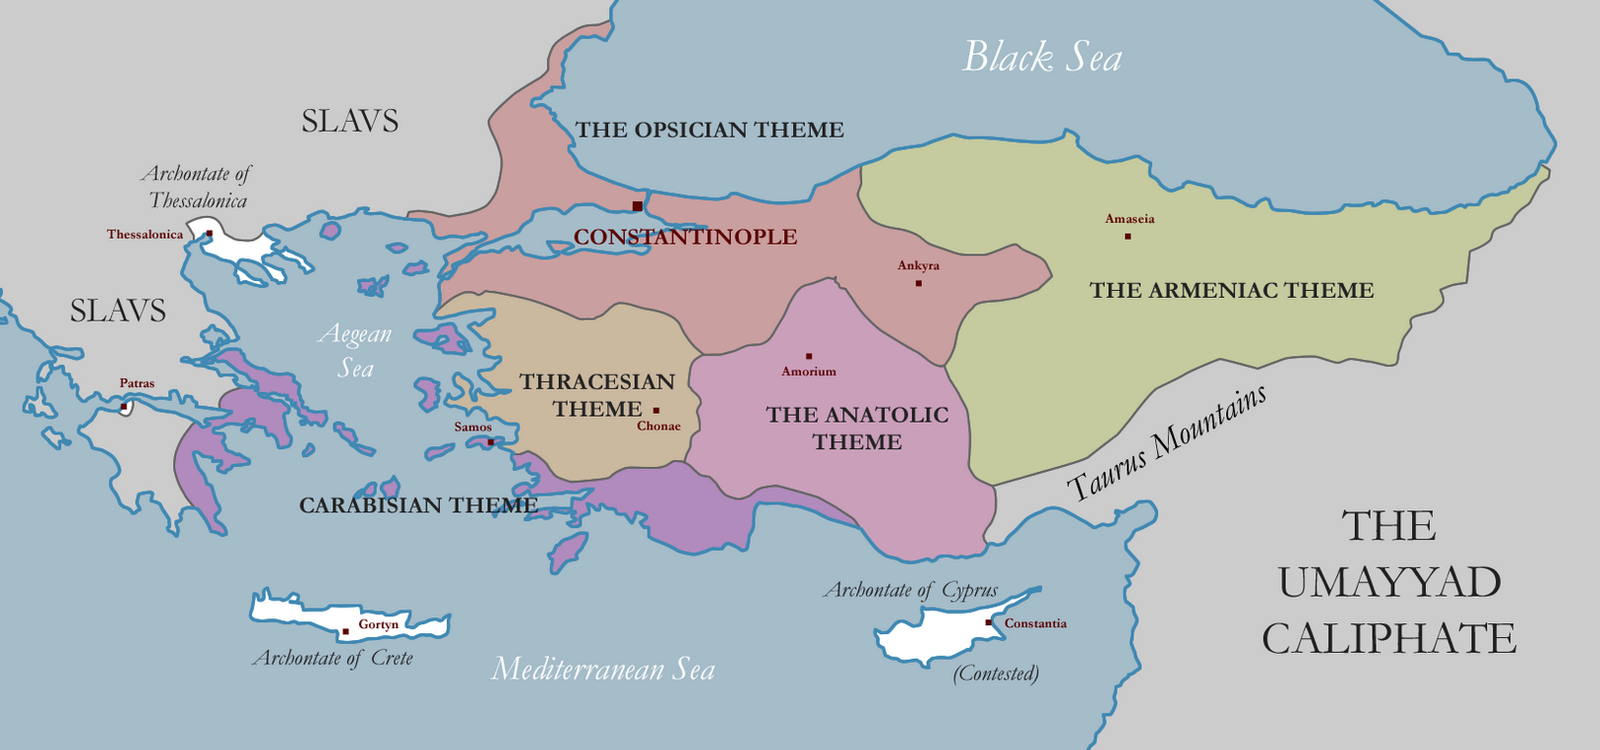 Themes of the Byzantine Empire in the 7th Century by eaxelandersson